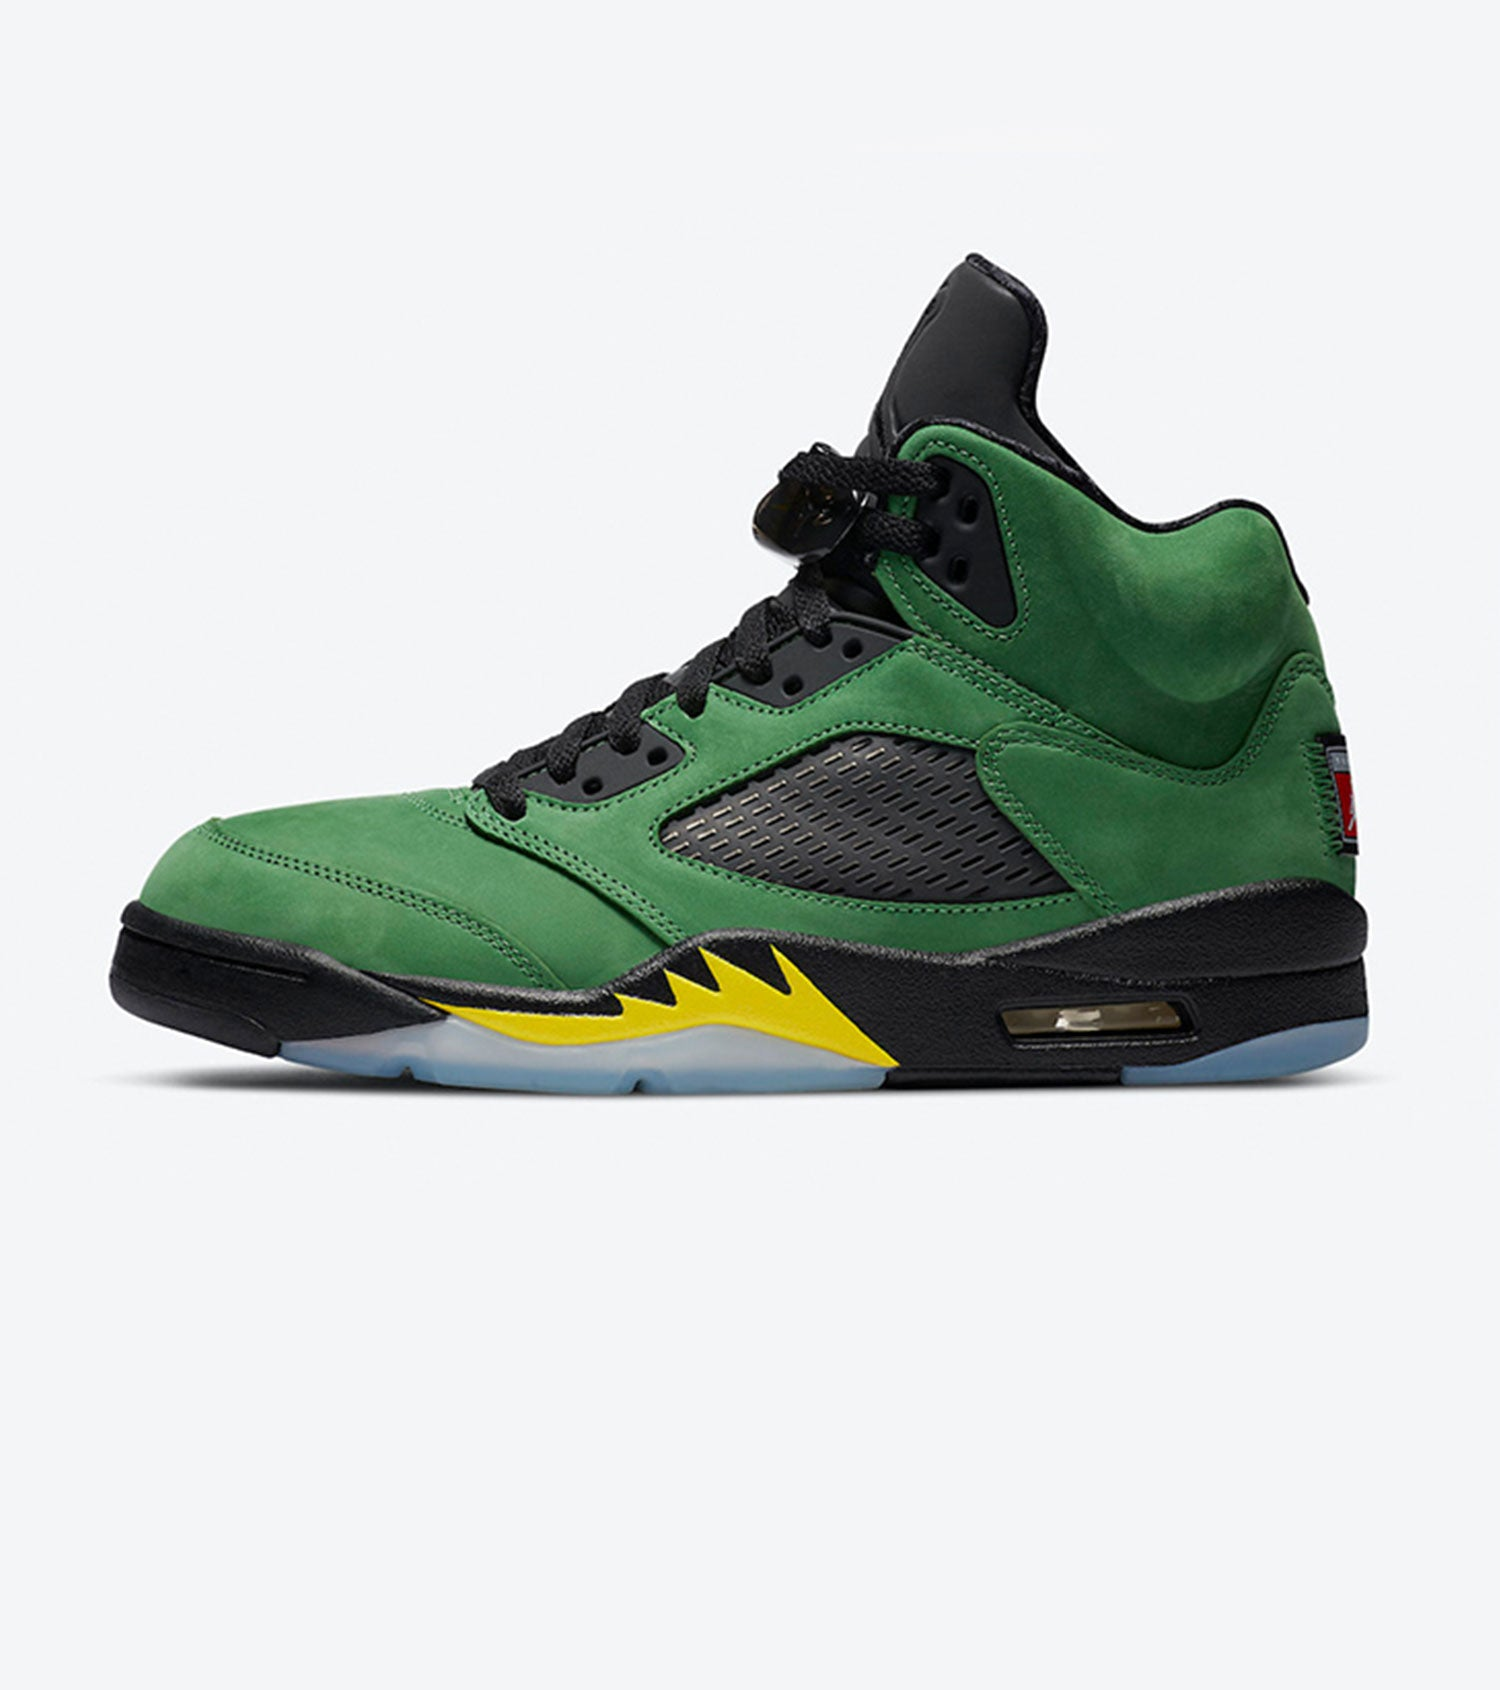 Air Jordan 5 Retro SE Oregon - Men's Shoe